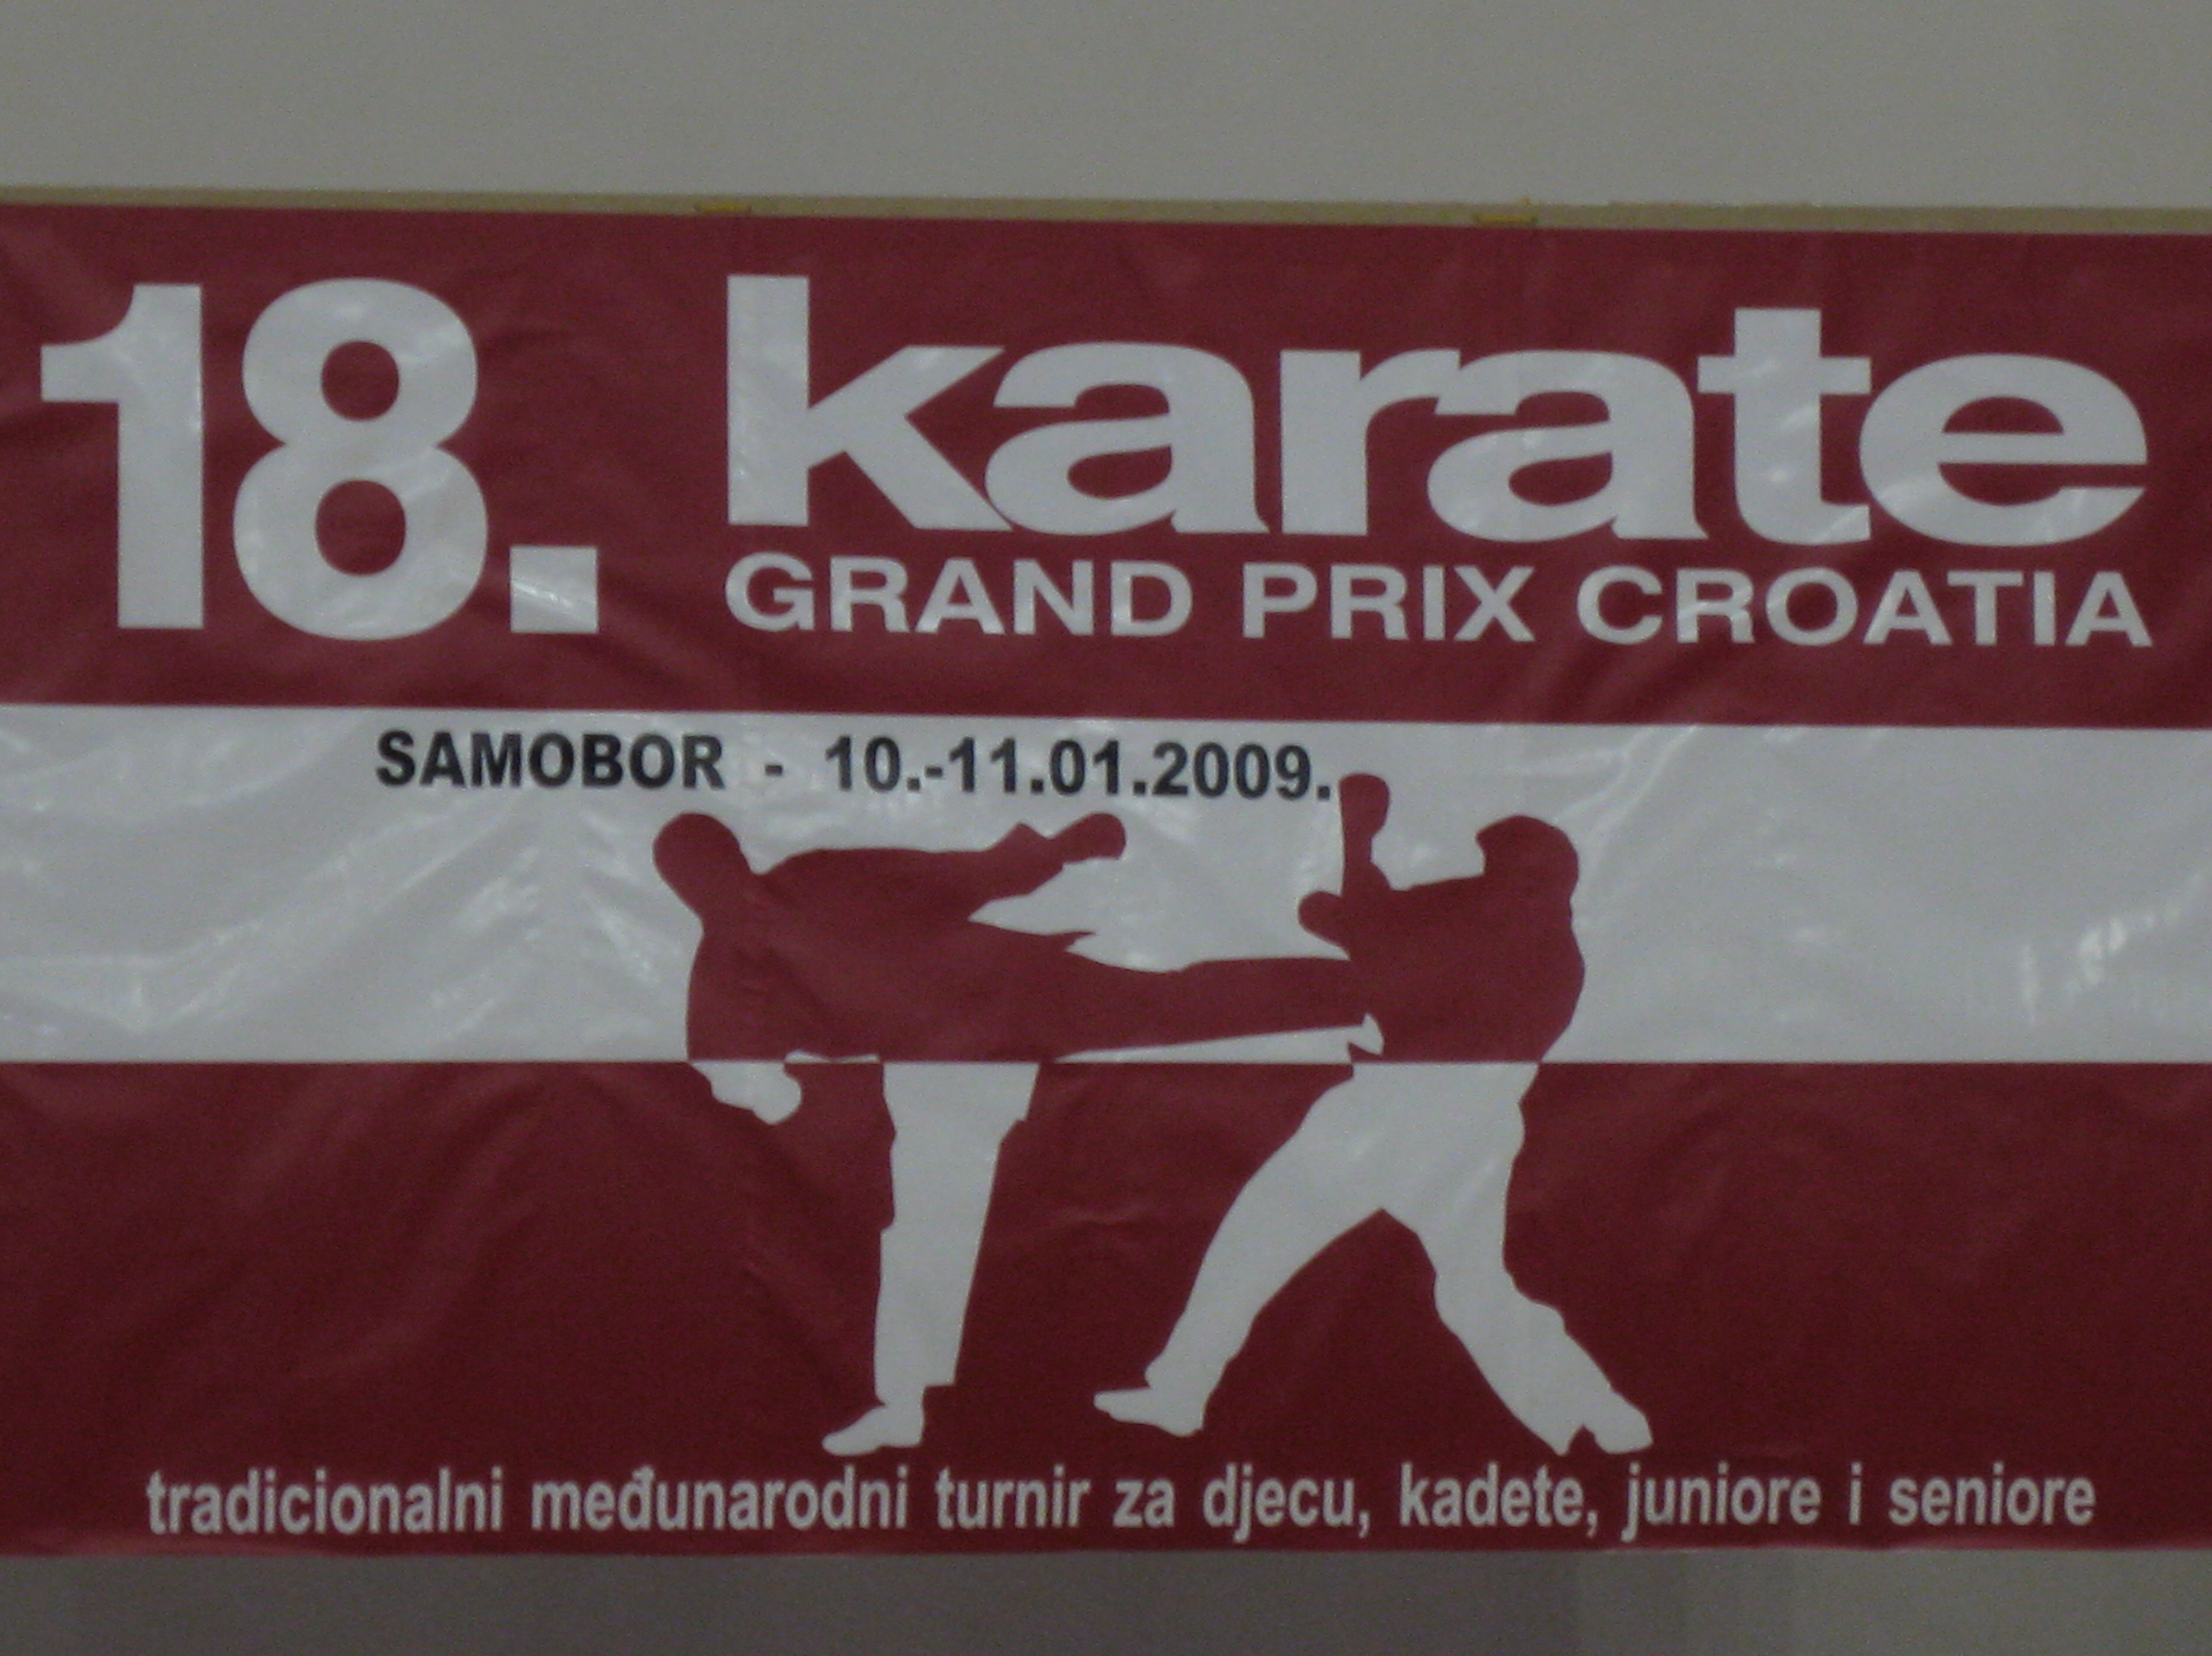 Grand Prix Croatia 2009 Samobor